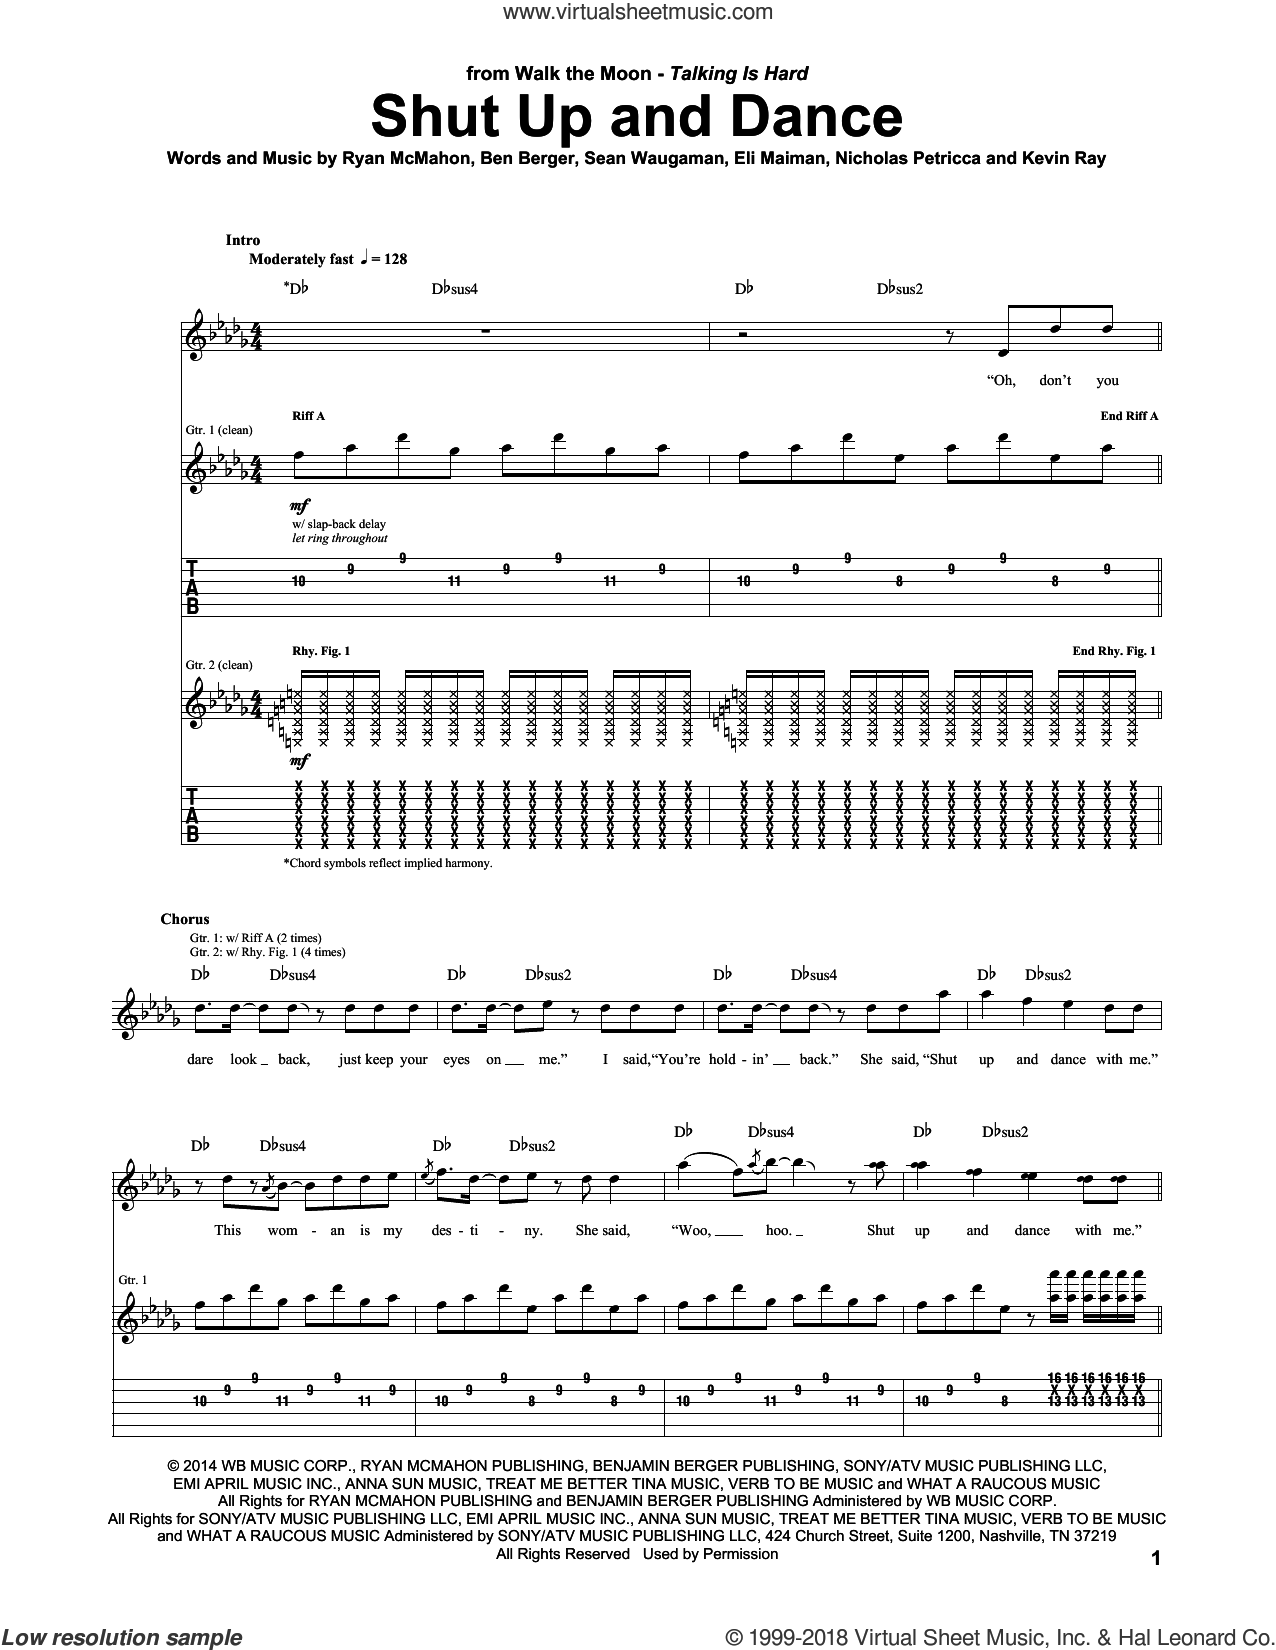 Shut Up And Dance sheet music for guitar (tablature) by Walk The Moon, Ben Berger, Eli Maiman, Kevin Ray, Nicholas Petricca, Ryan McMahon and Sean Waugaman, intermediate skill level